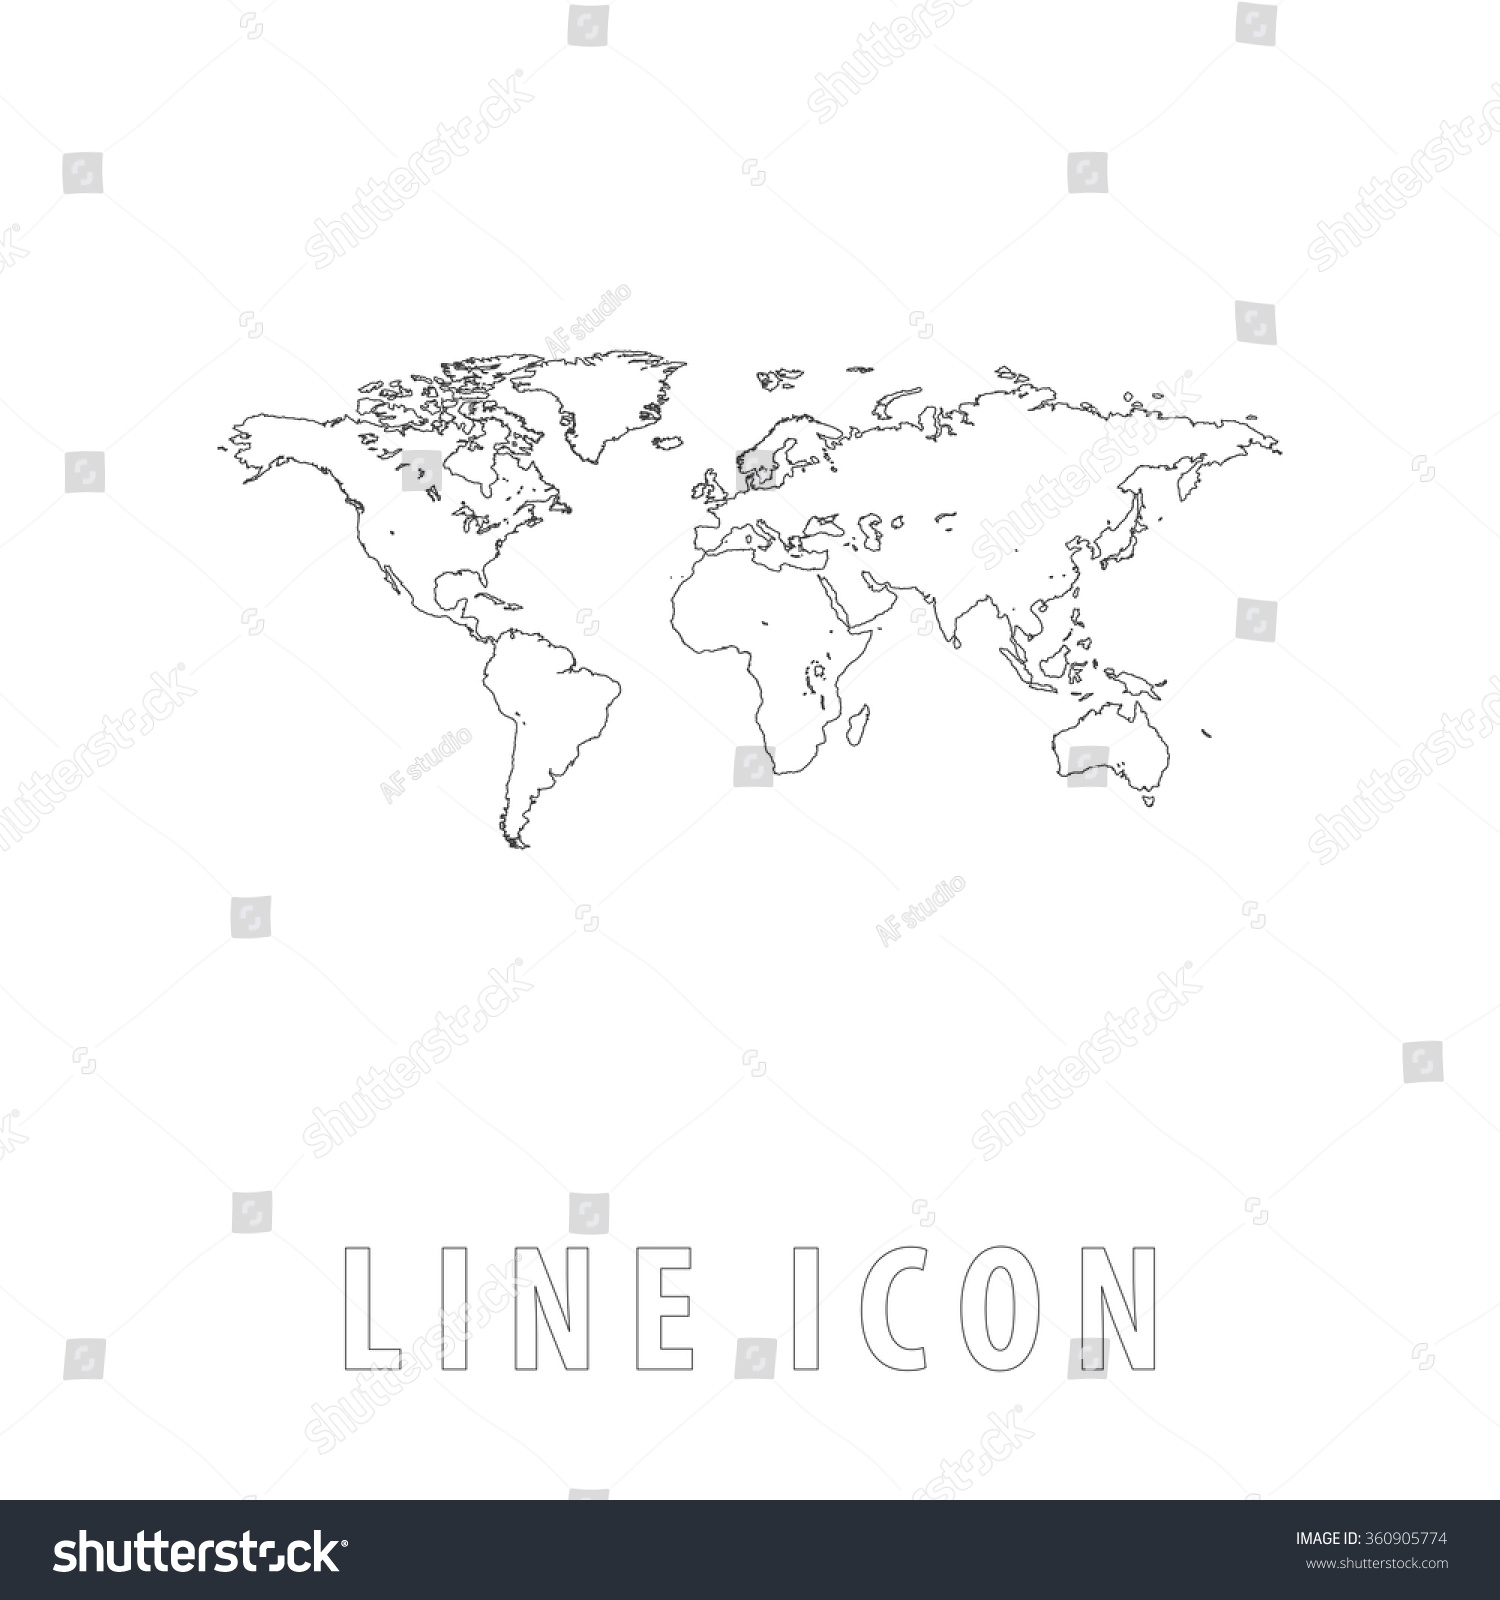 World map outline simple vector icon stock vector hd royalty free world map outline simple vector icon on white background line pictogram with text gumiabroncs Choice Image